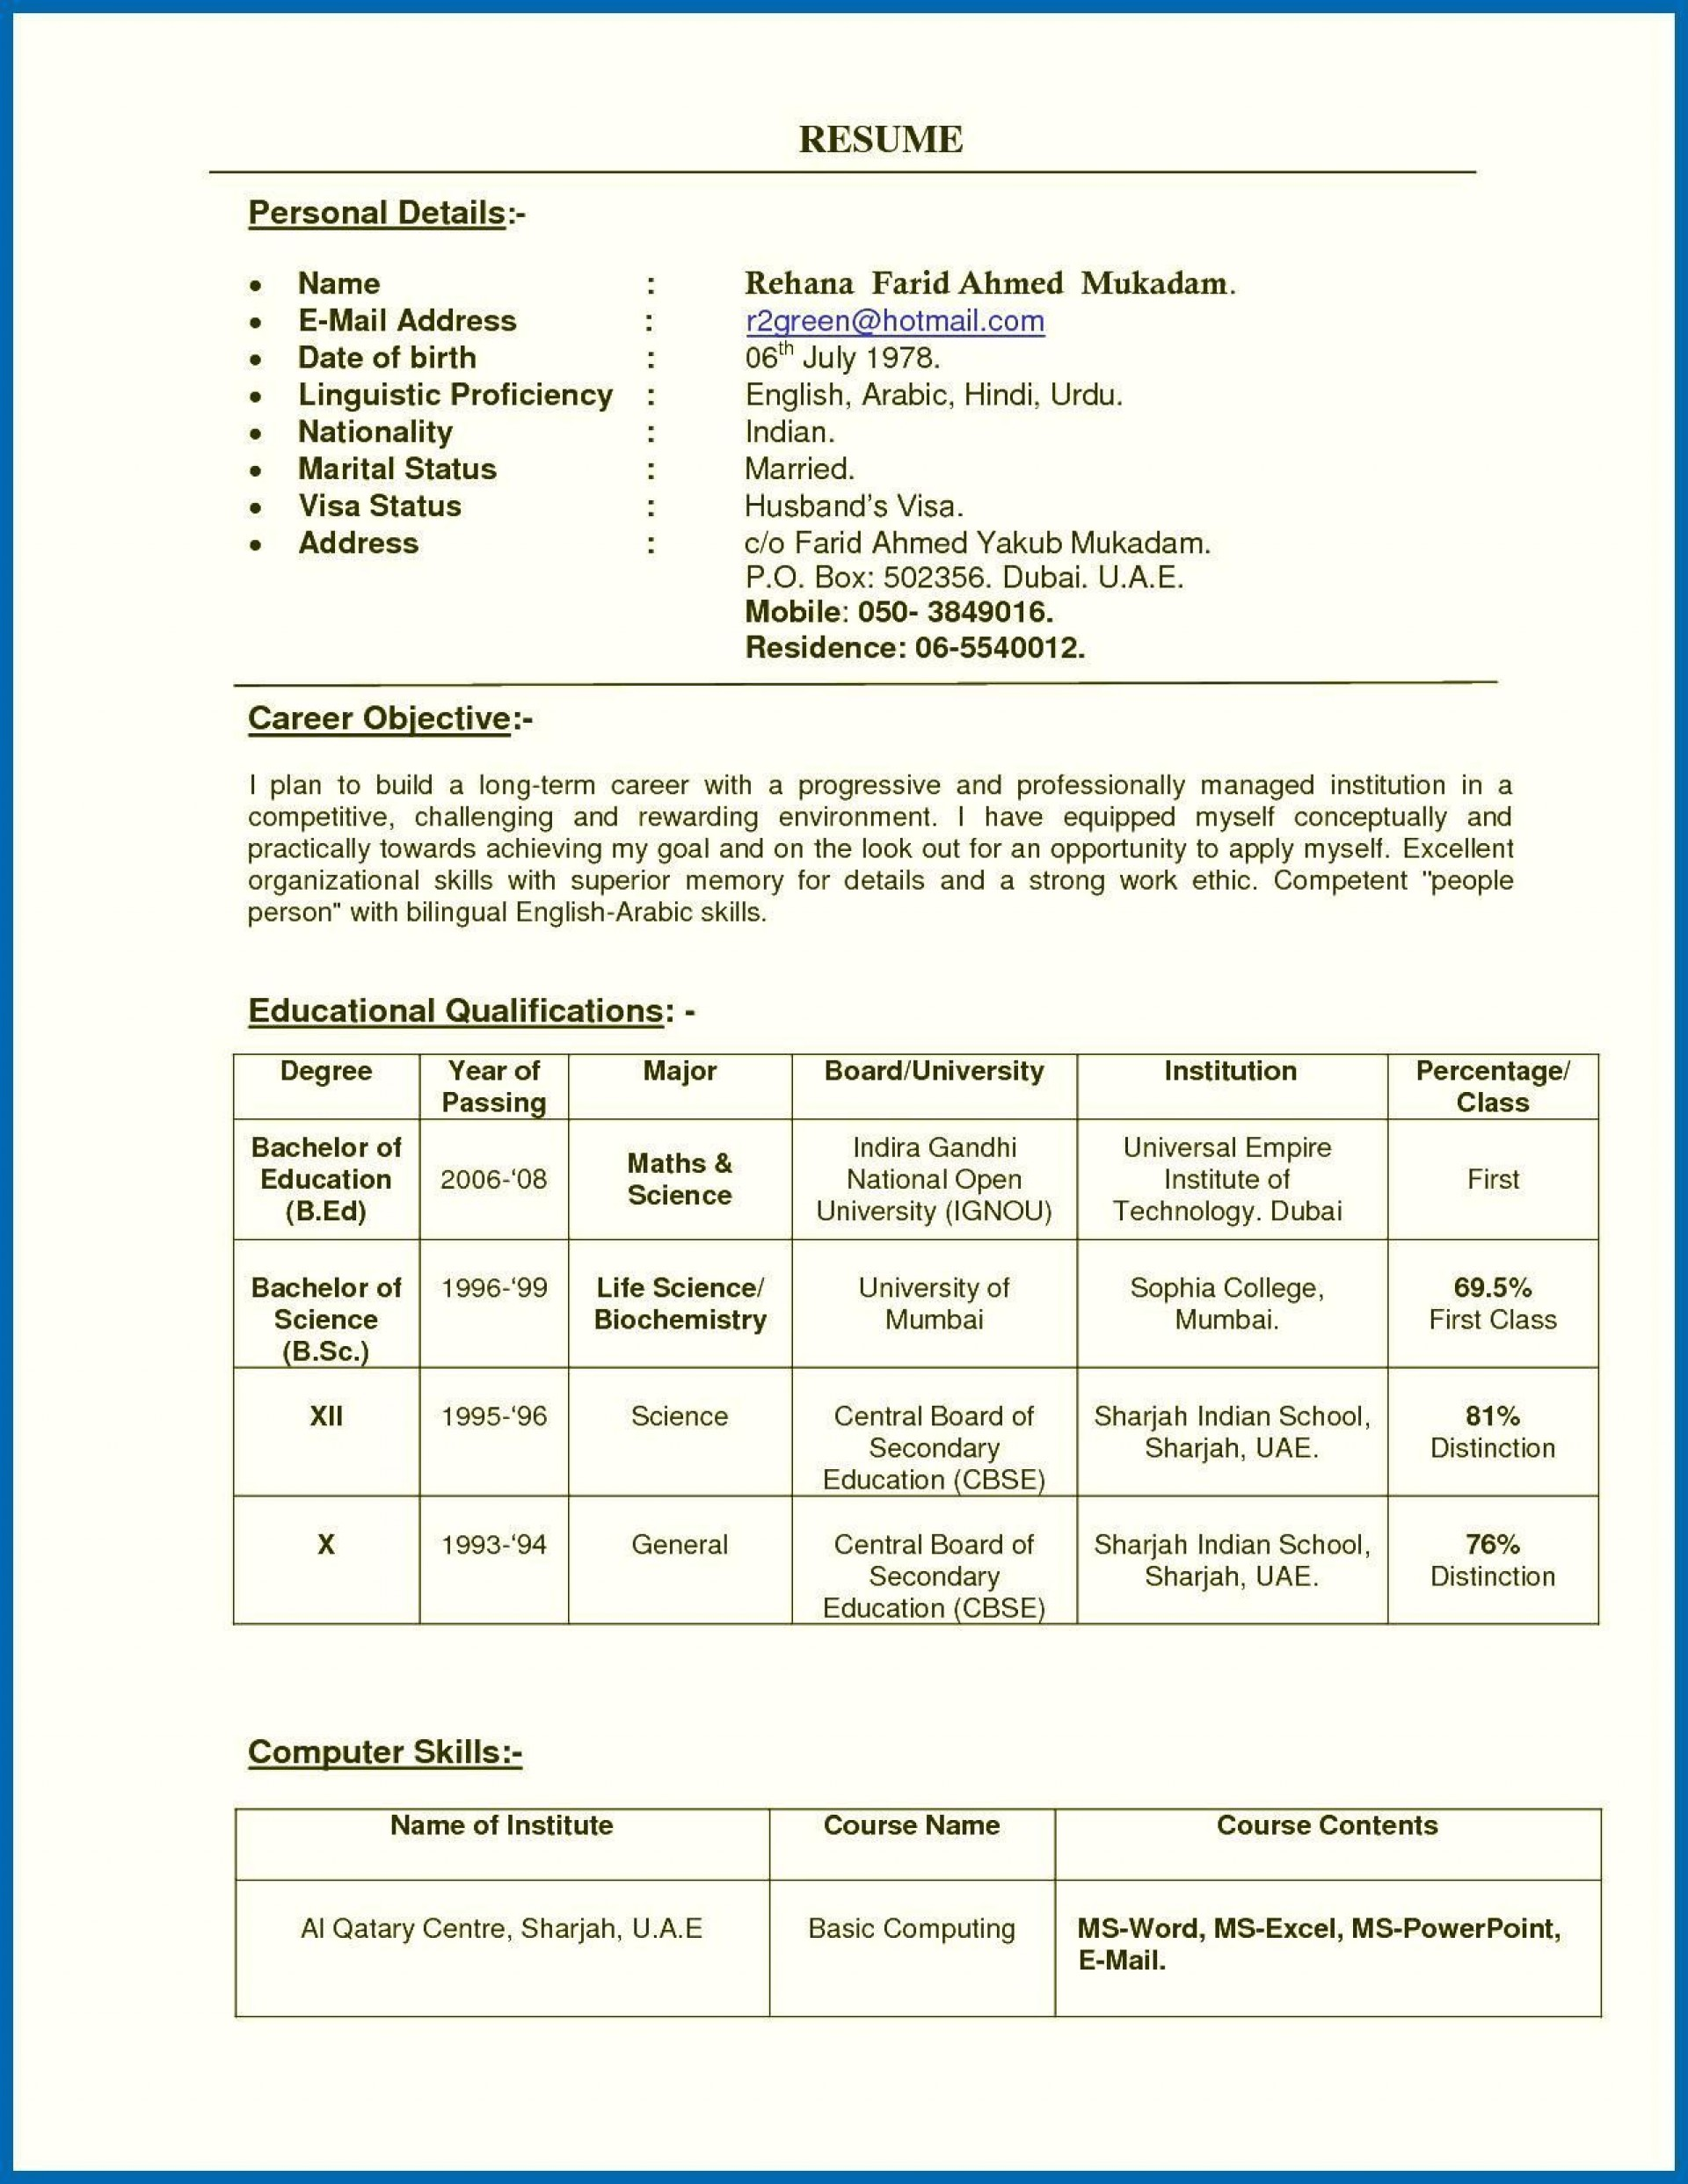 resume format example for teaching job addictionary indian examples unique photo writer Resume Indian Resume Format Examples